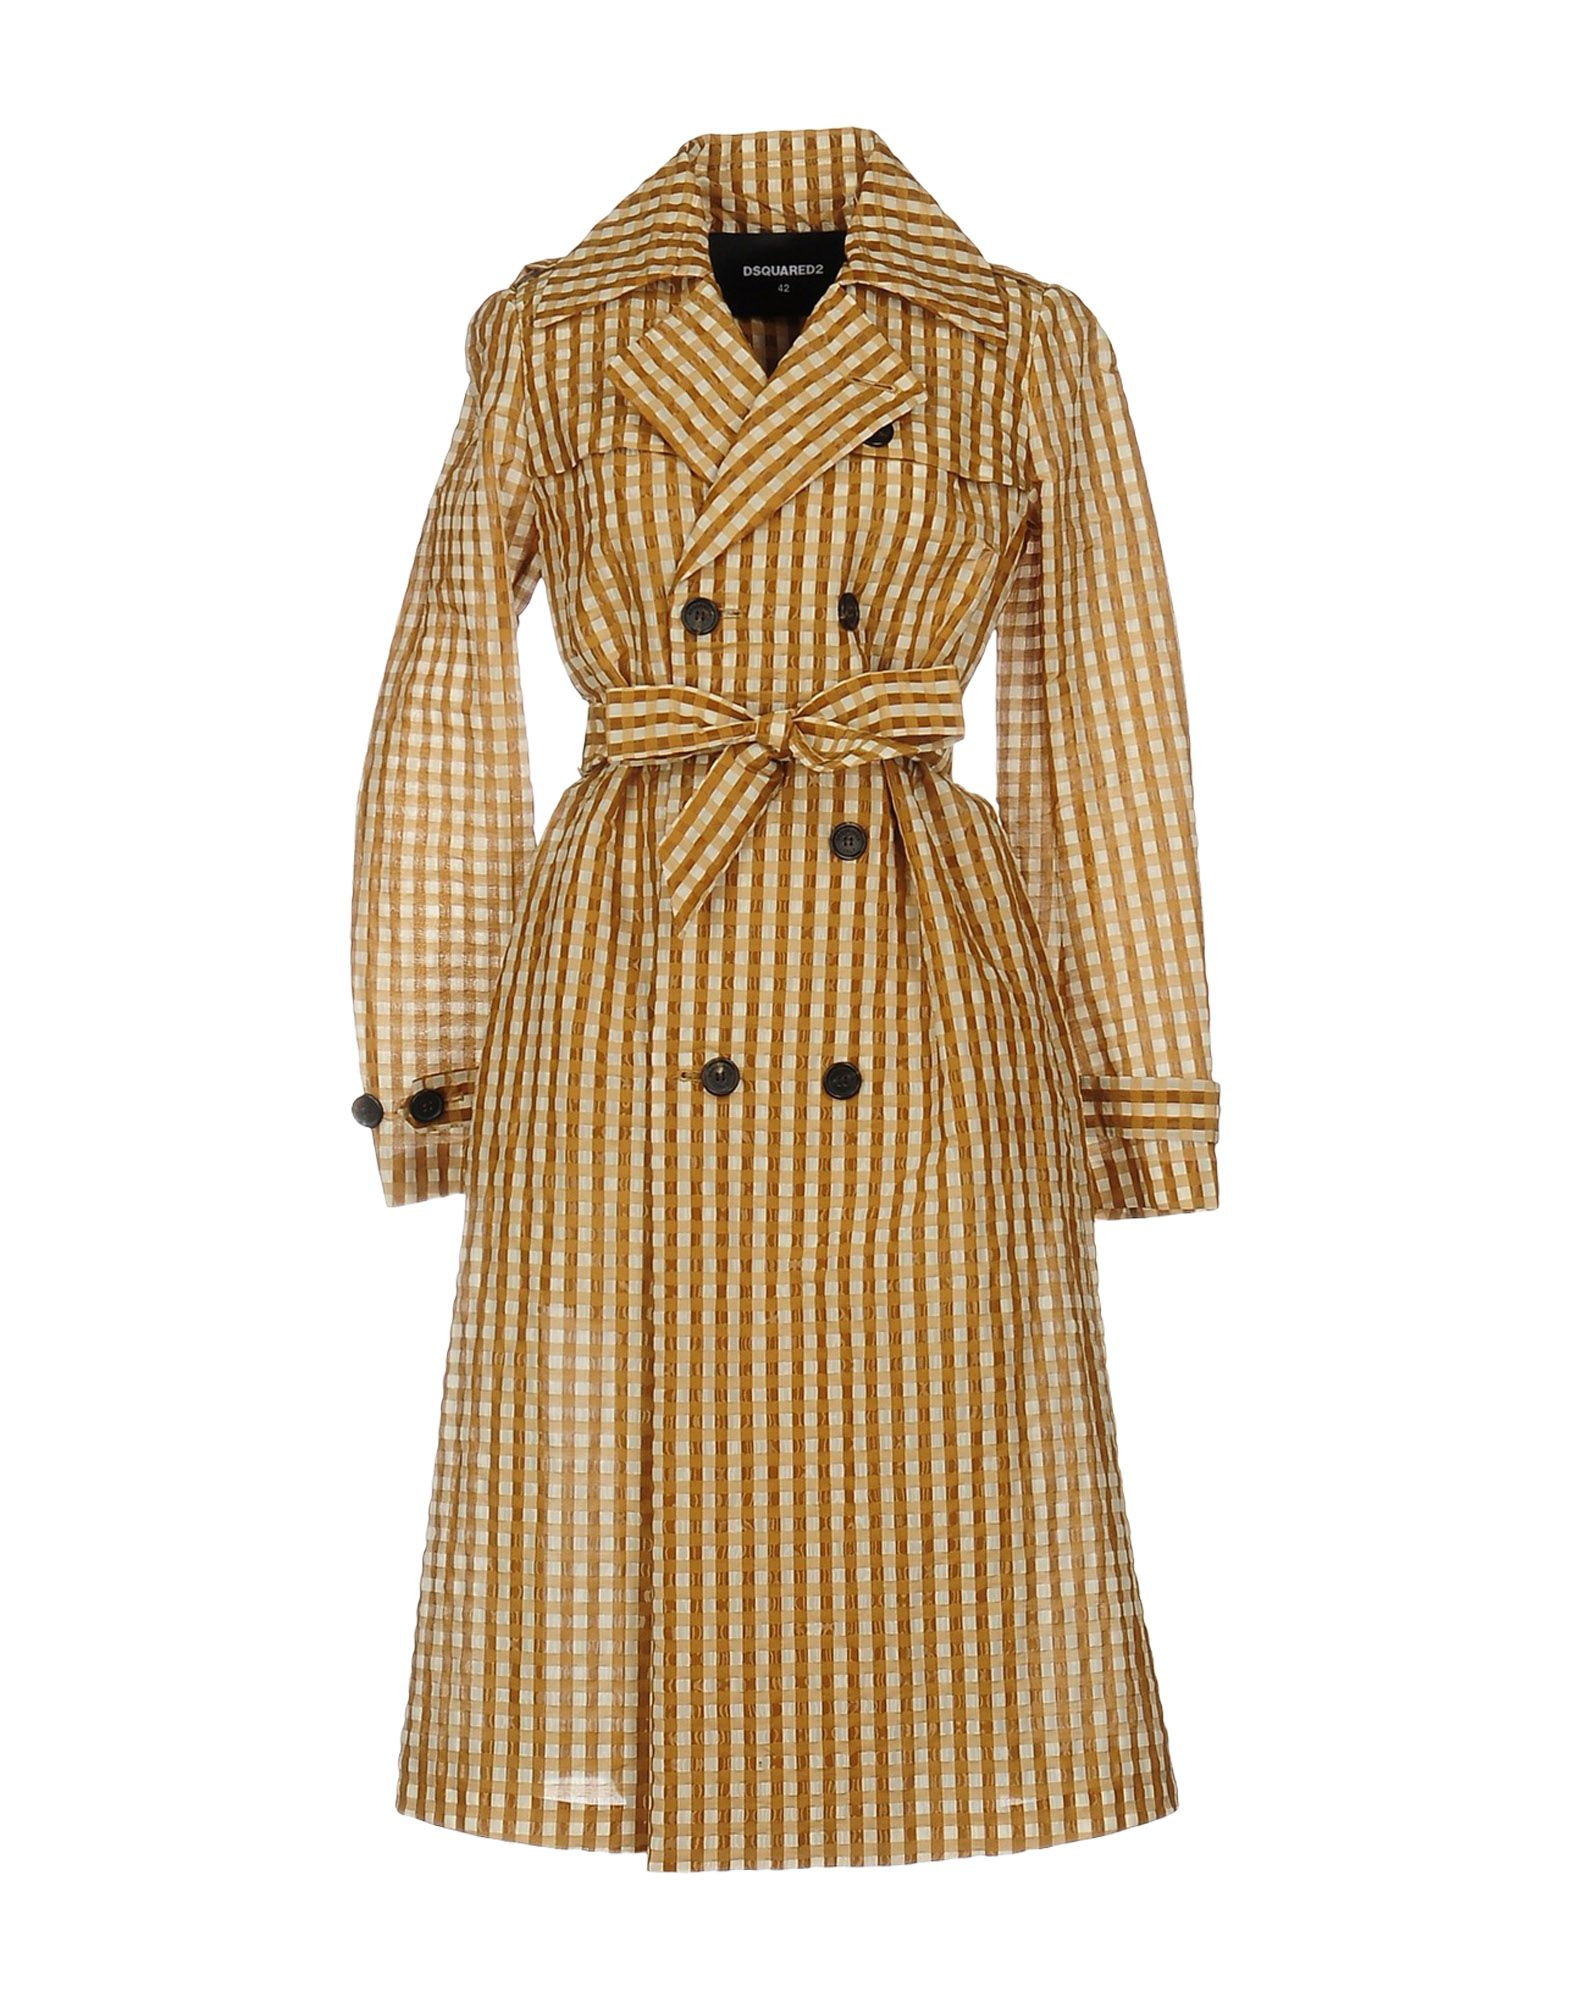 Country Road Trench Coat - Tradingbasis